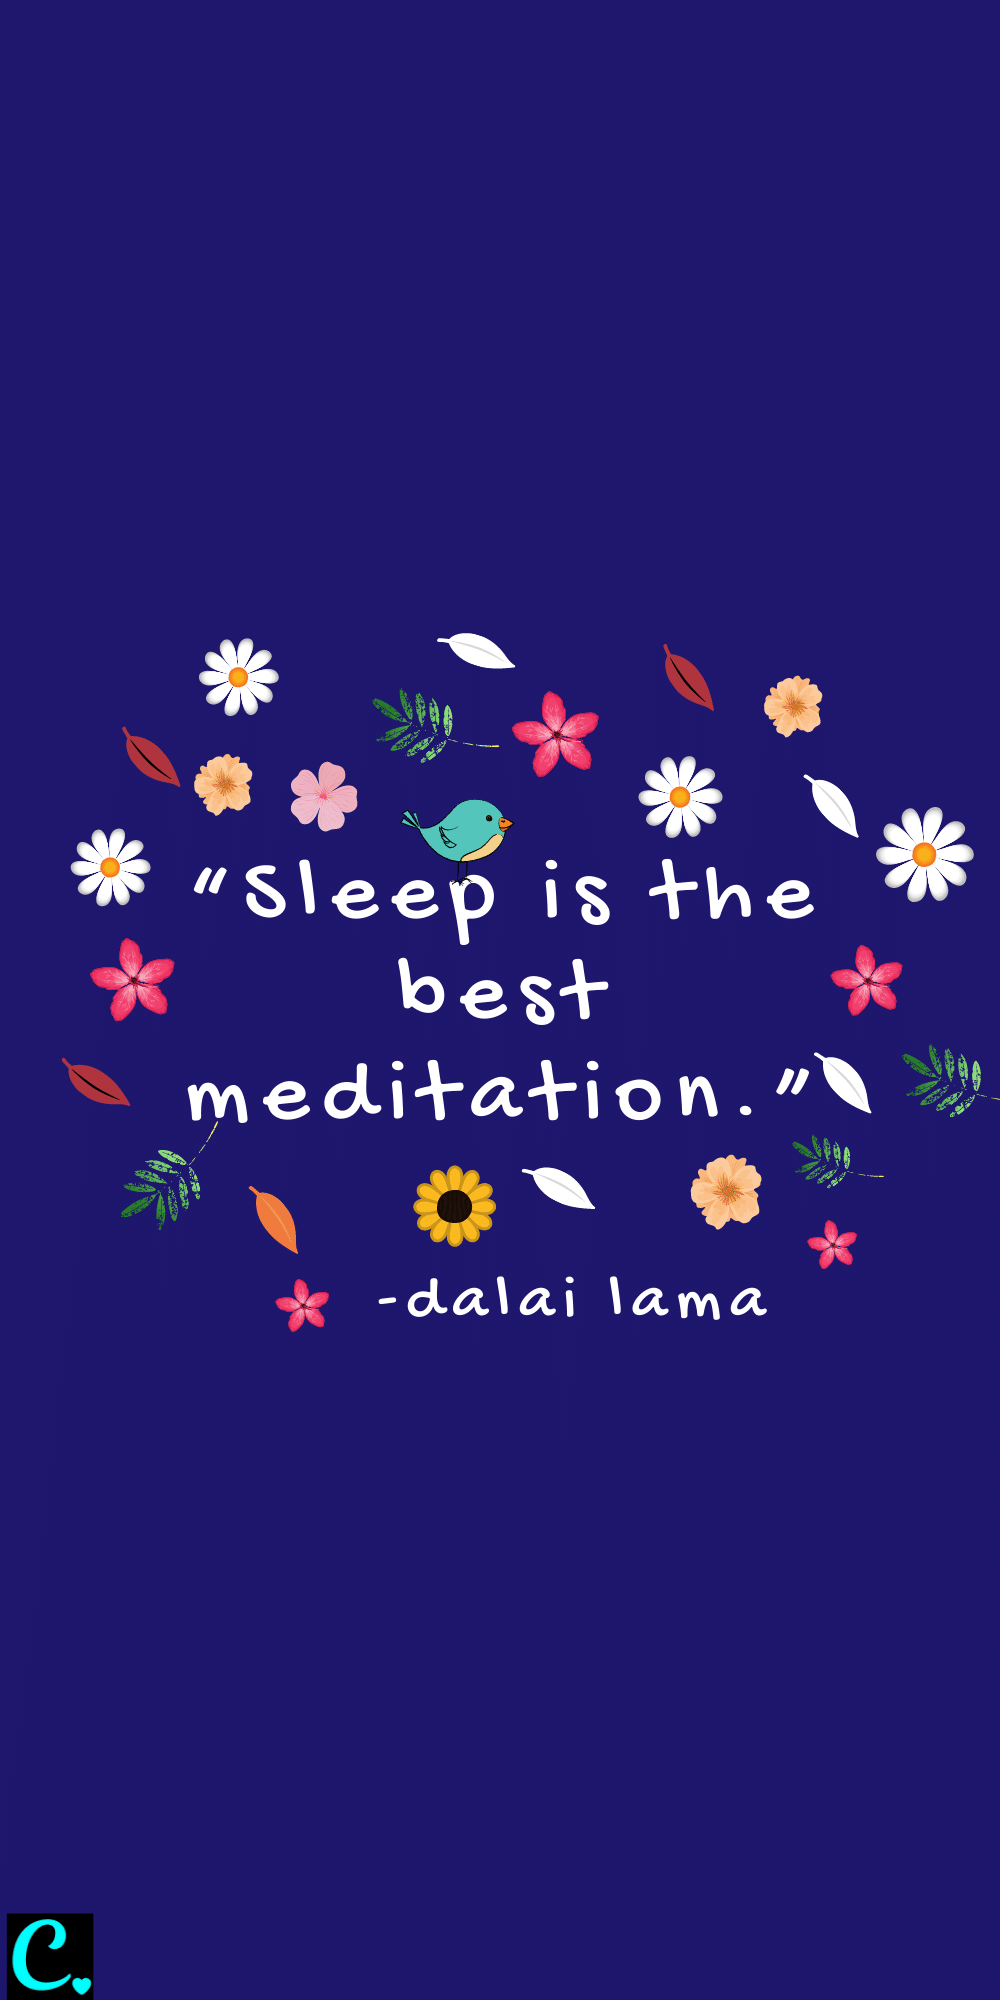 Sleep is the best meditation quote by Dalai Lama